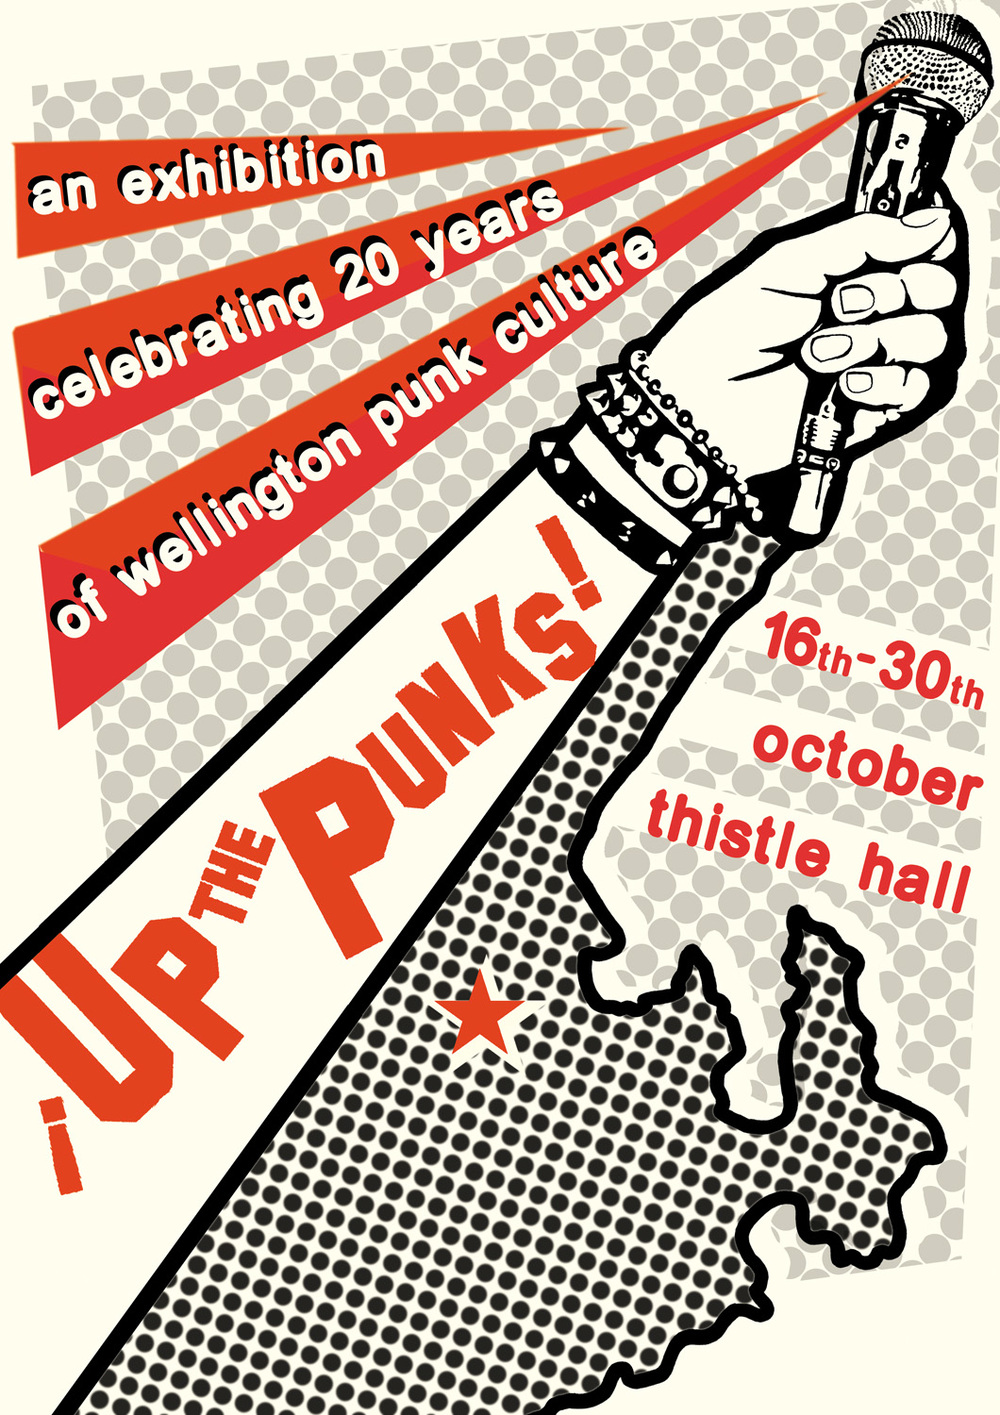 UP THE PUNKS 2002